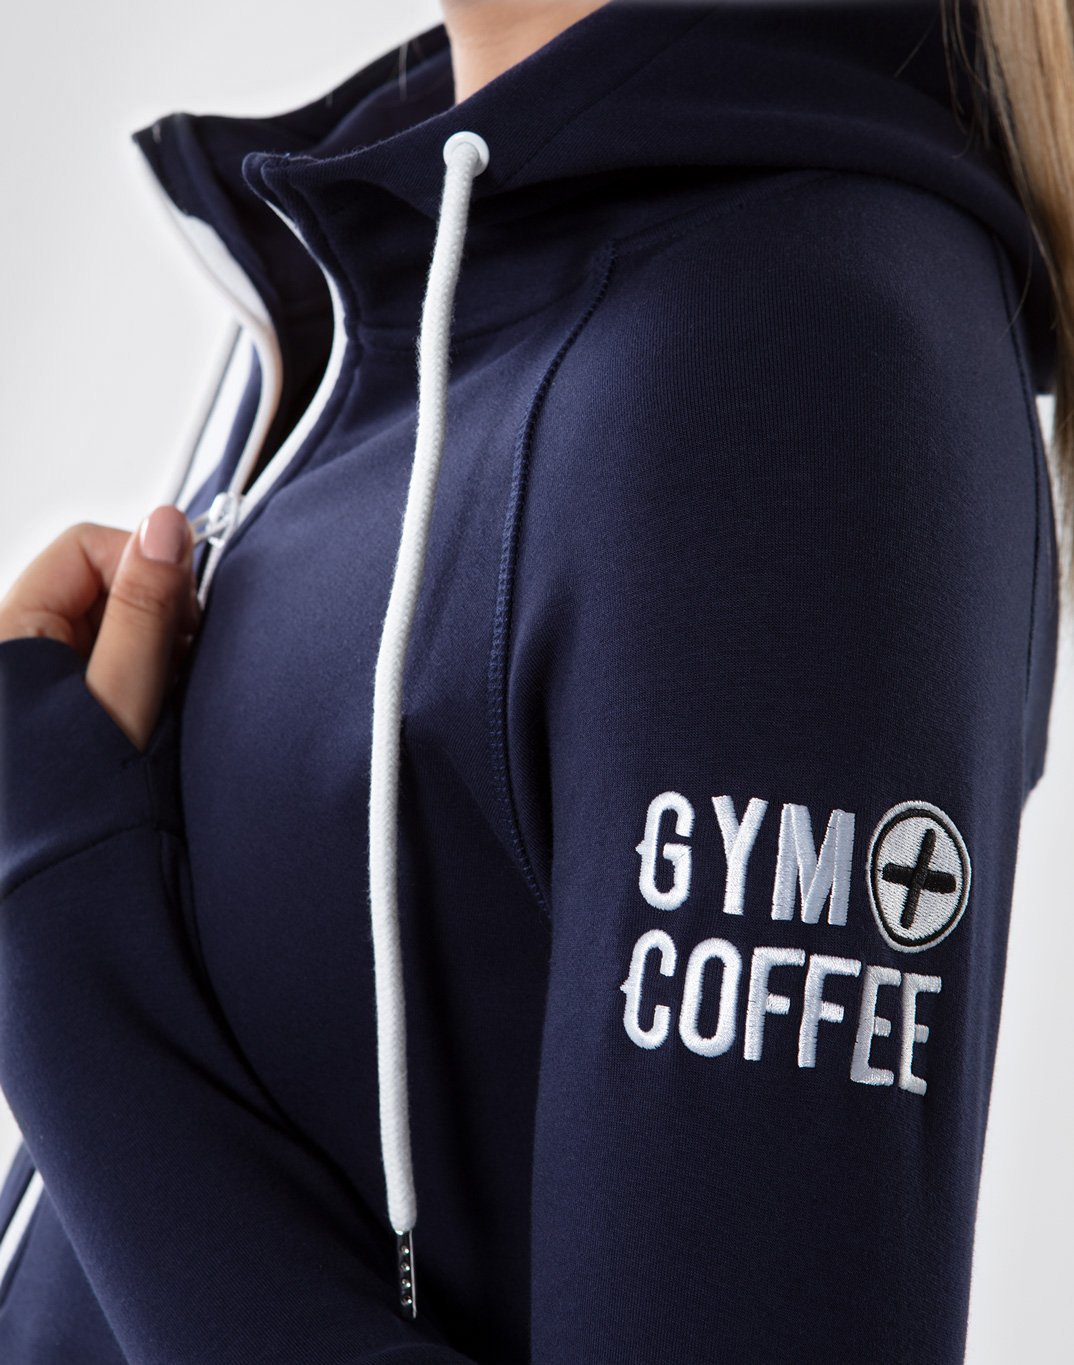 Gym Plus Coffee Hoodie Chill Hoodie in Navy Designed in Ireland